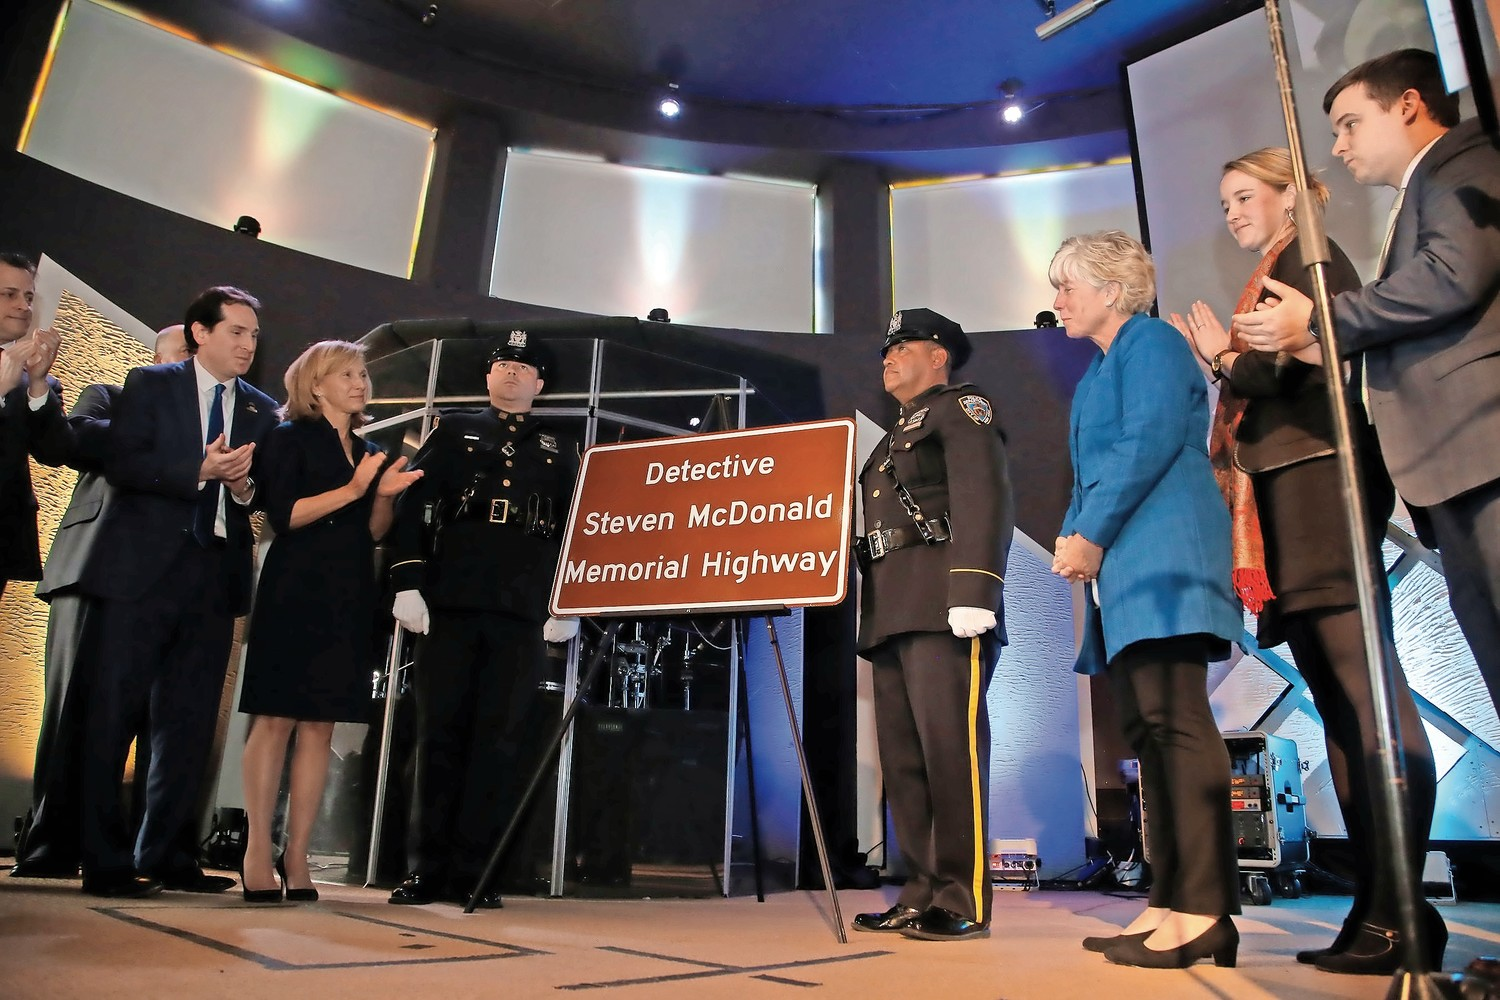 State officials and members of the NYPD unveiled a highway sign in honor of NYPD Detective Steven McDonald on Feb. 9.